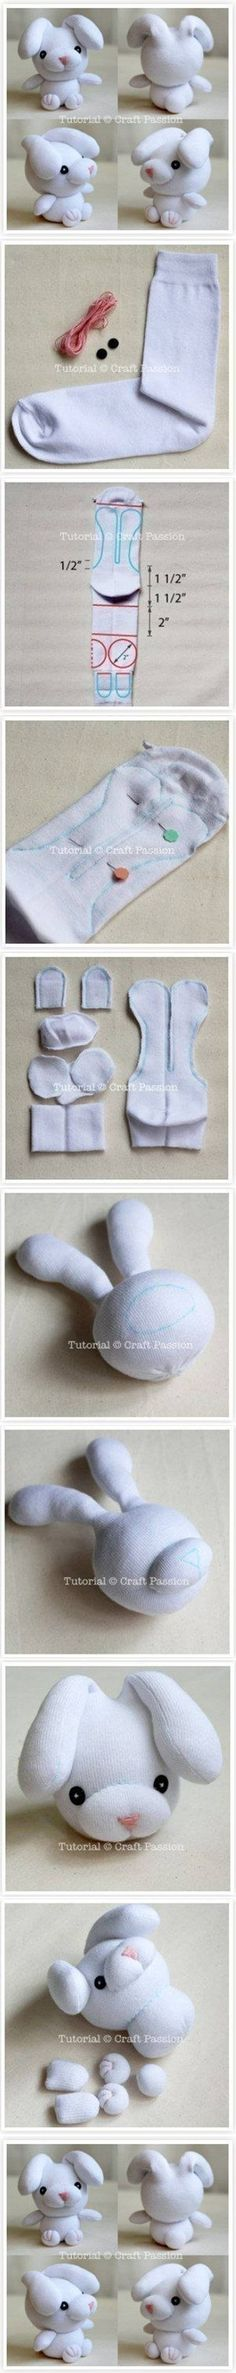 DIY Sew Sock Bunny!!!! Try it out and so cute!